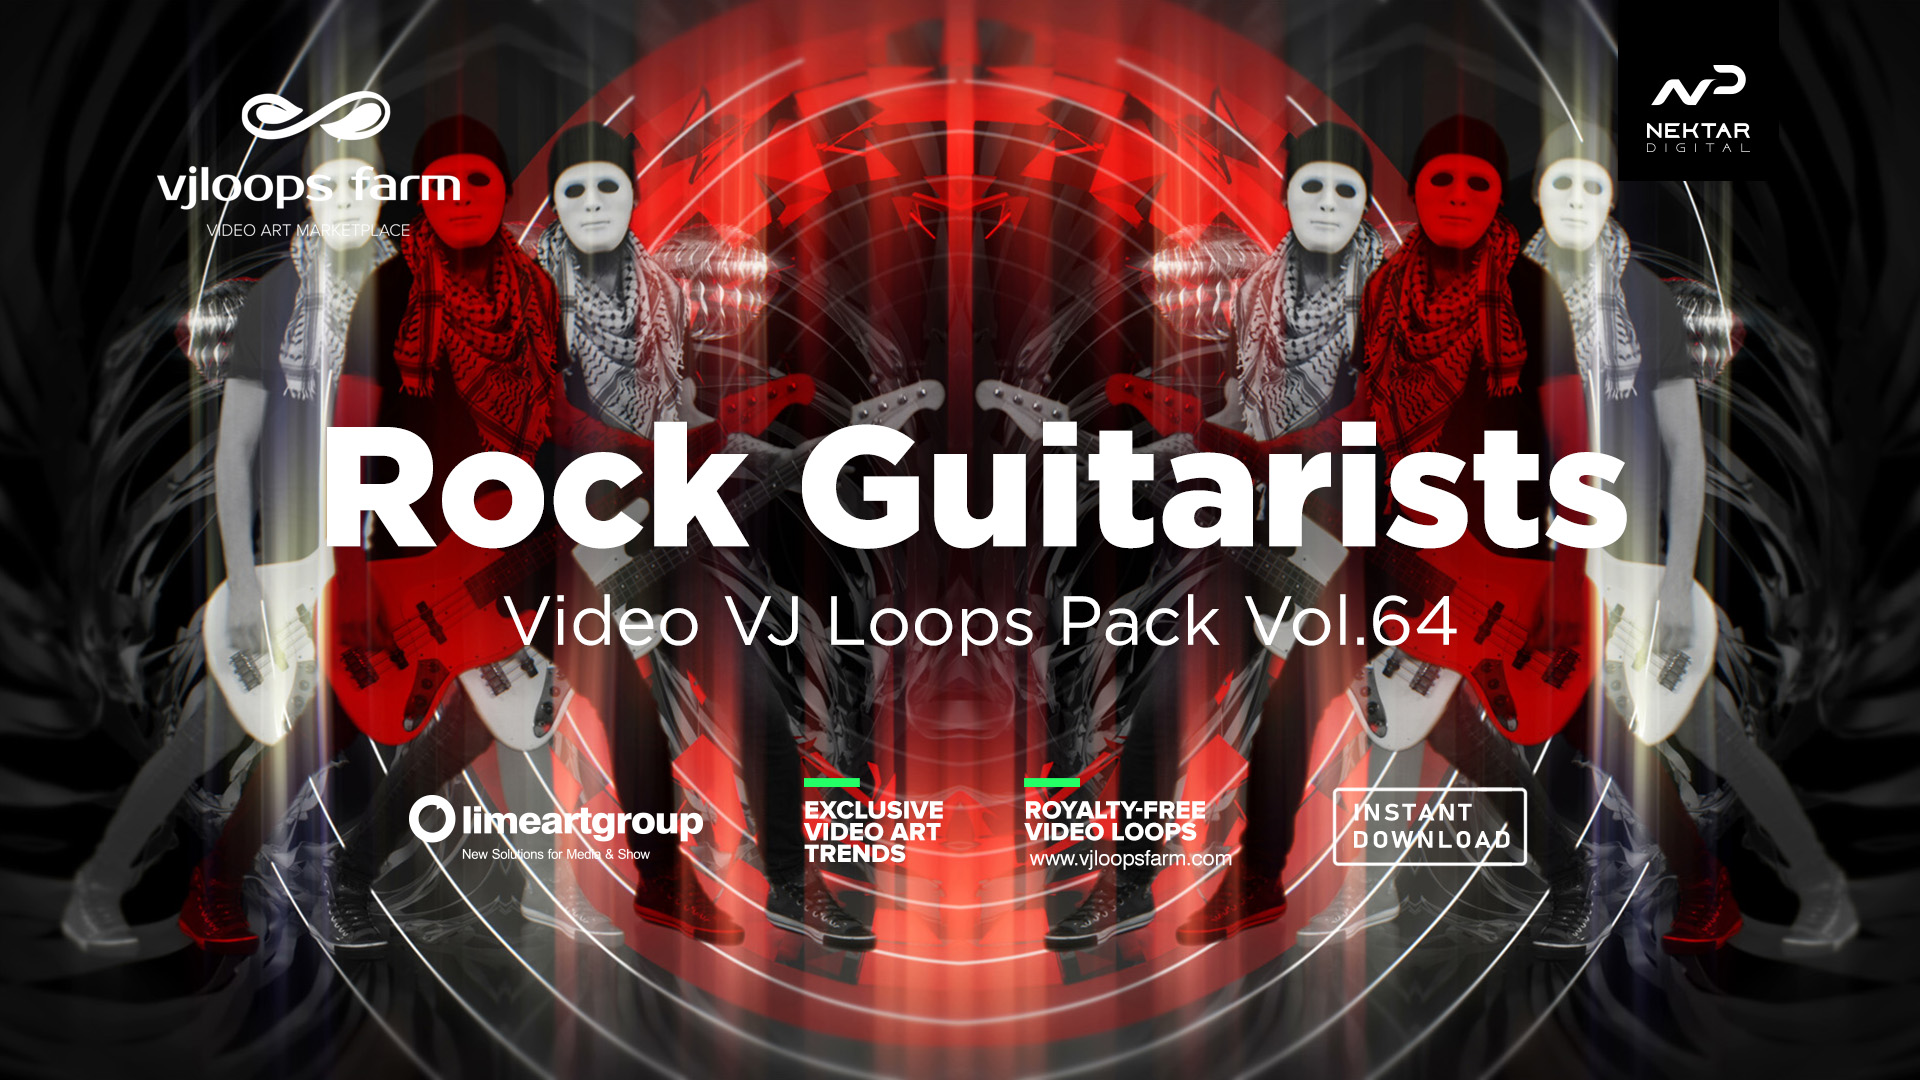 hard rock man guitarist video art vj loop